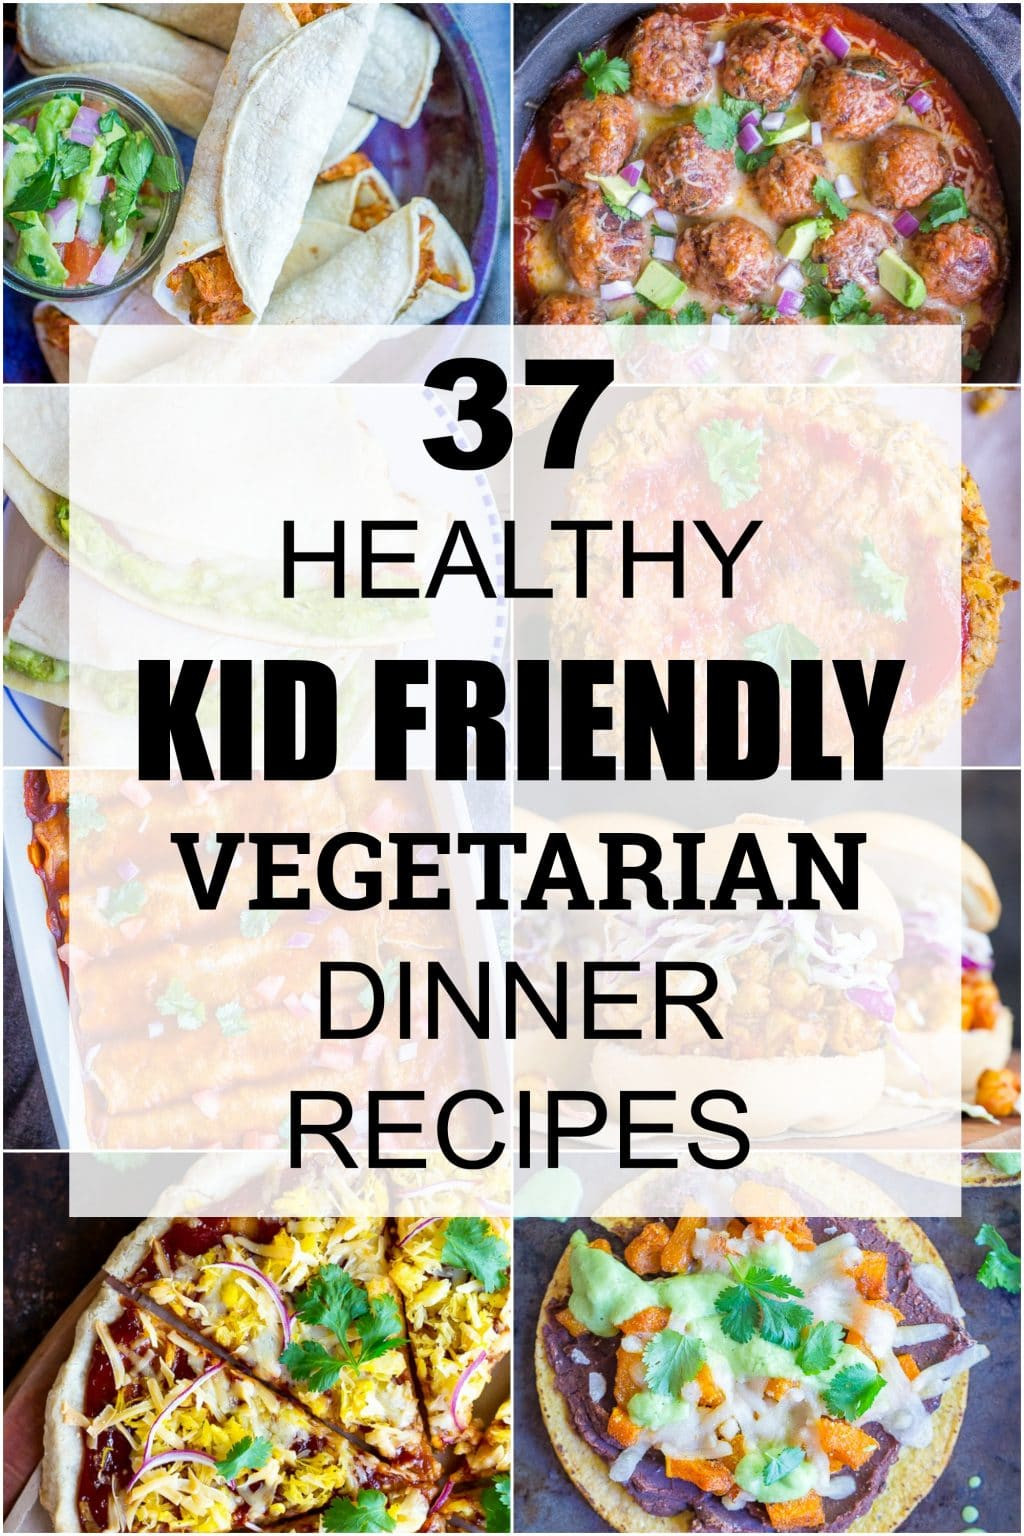 Healthy Vegetarian Recipes For Kids  37 Healthy Kid Friendly Ve arian Dinner Recipes She